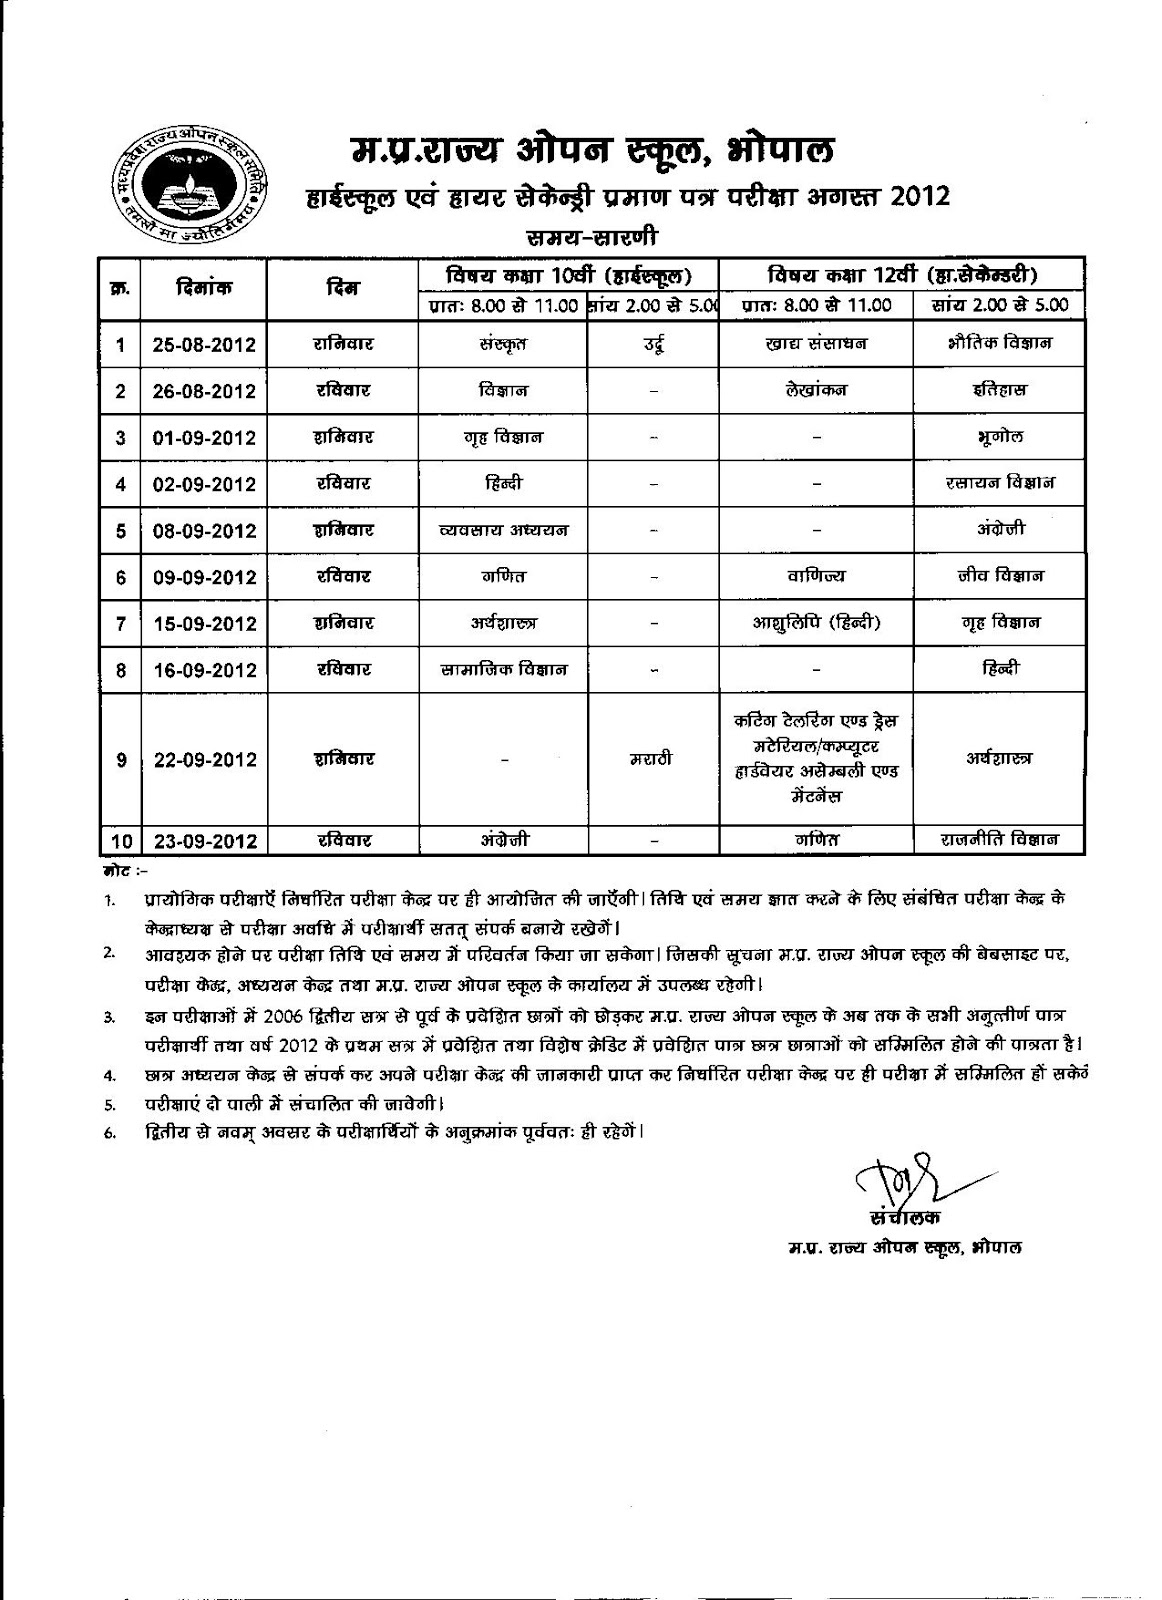 2012 exam afcat 21 uploaded jan 3 syllabus ticket for